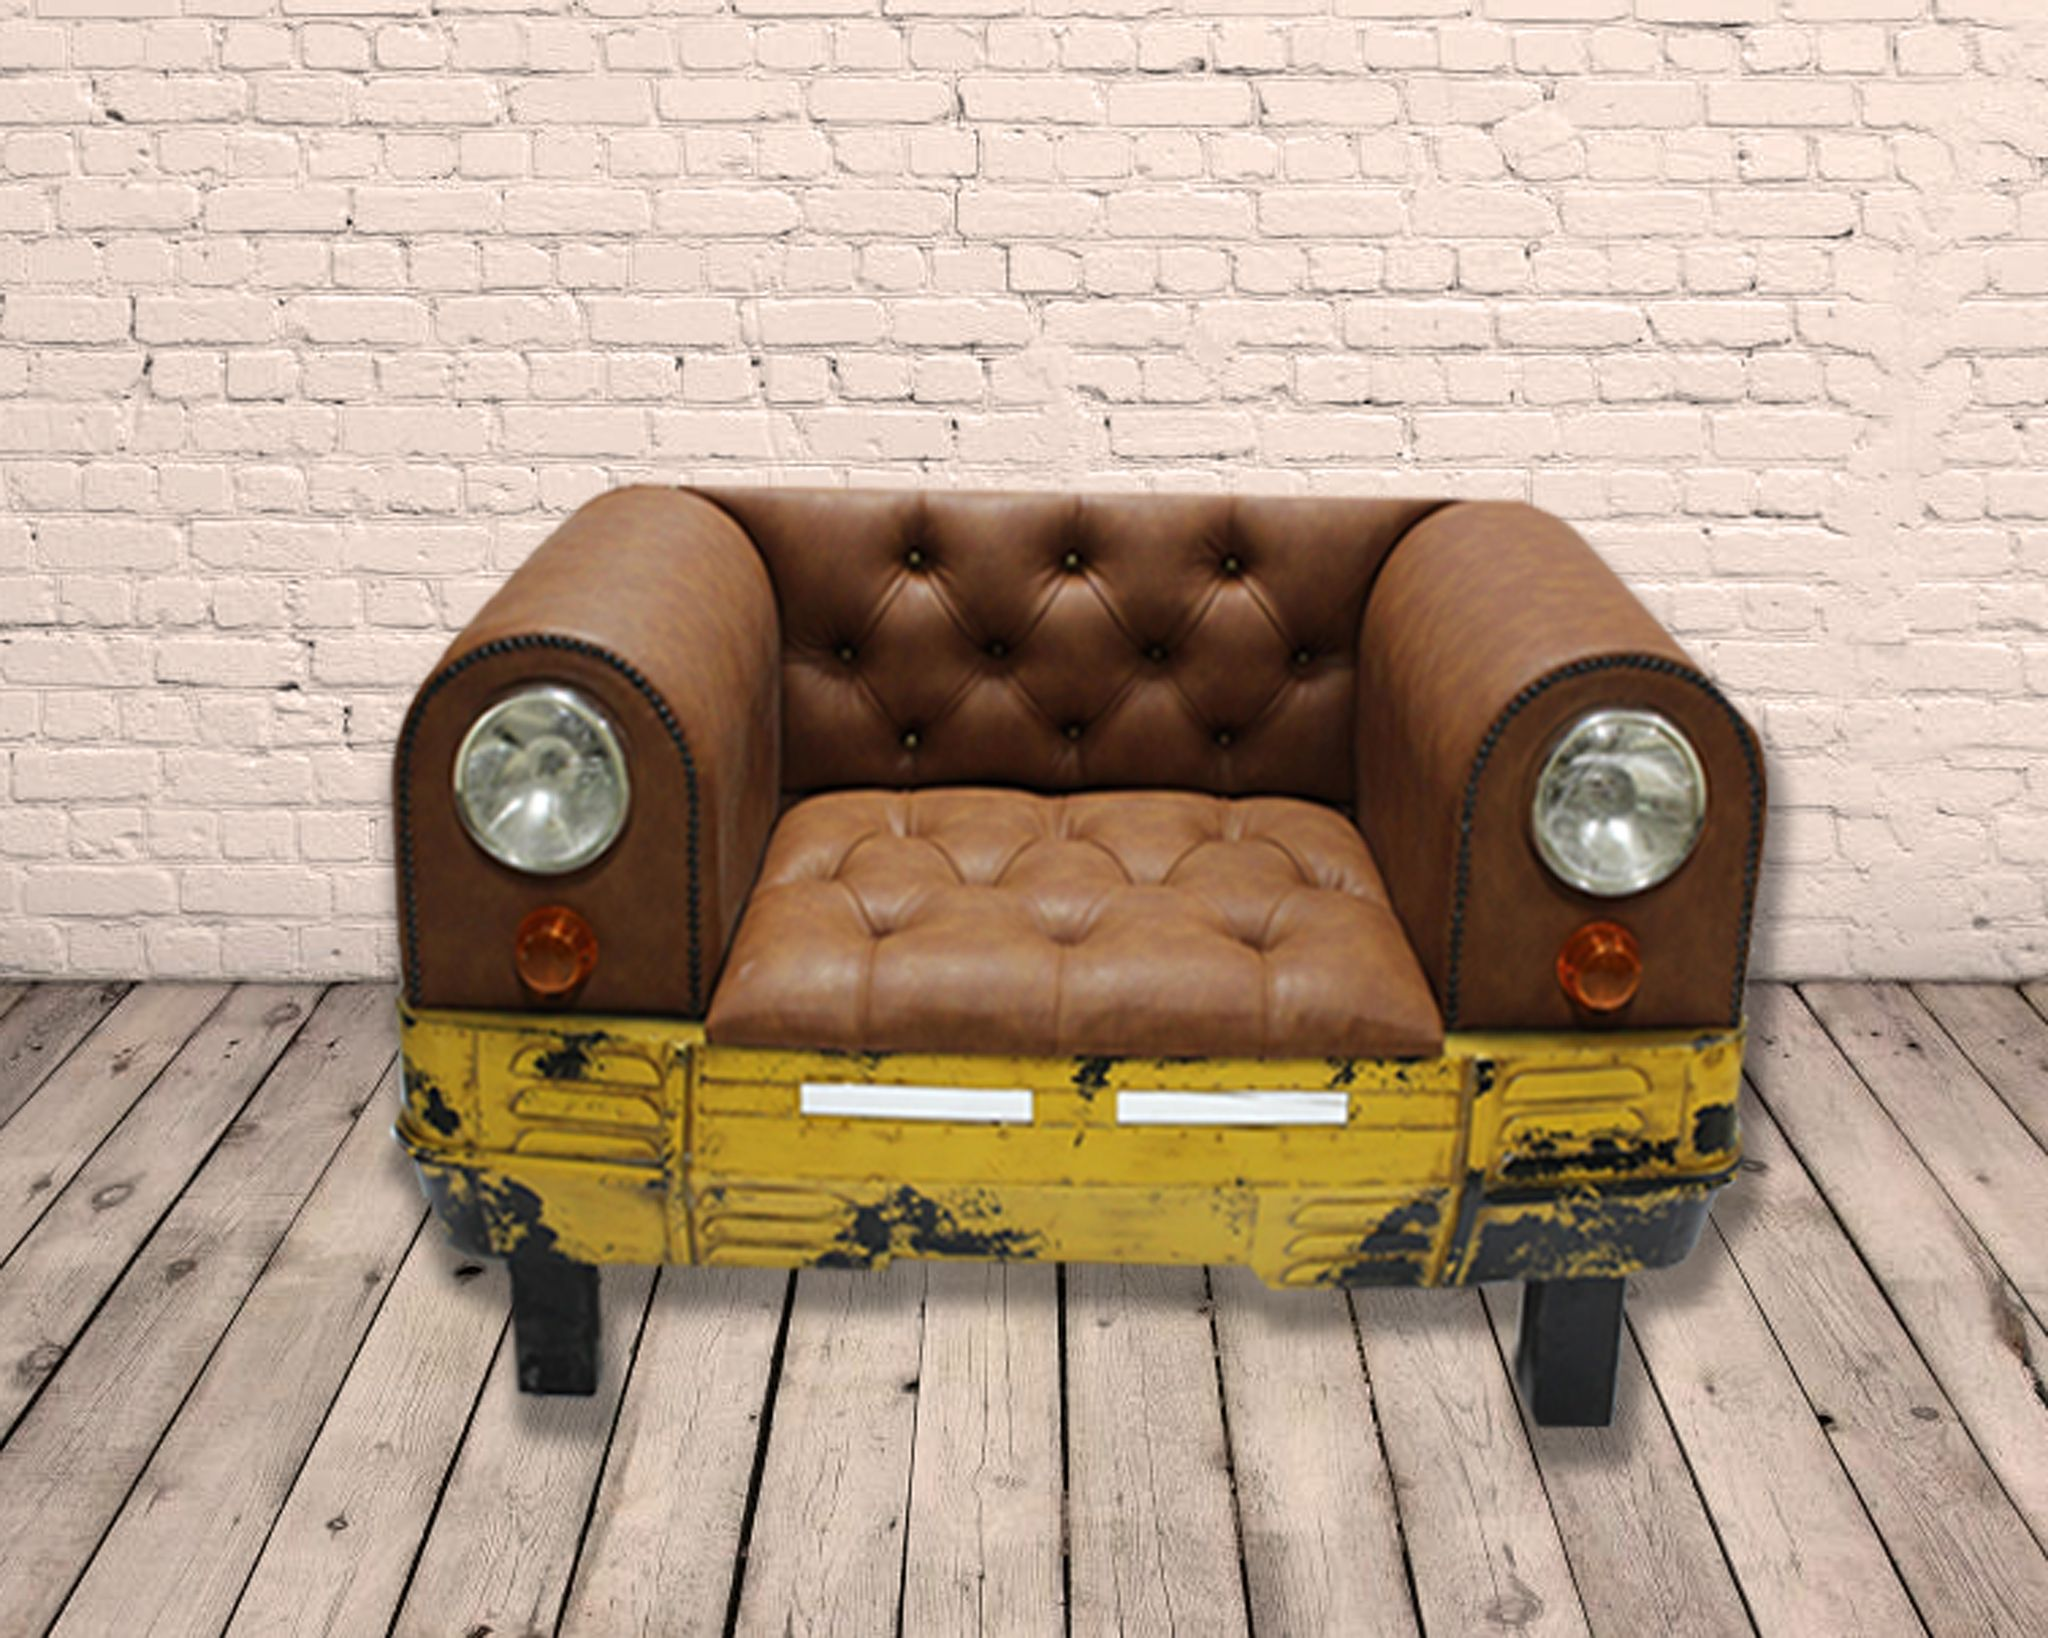 Wondrous Industrial Pu Leather Car Sofa Seat Gmtry Best Dining Table And Chair Ideas Images Gmtryco